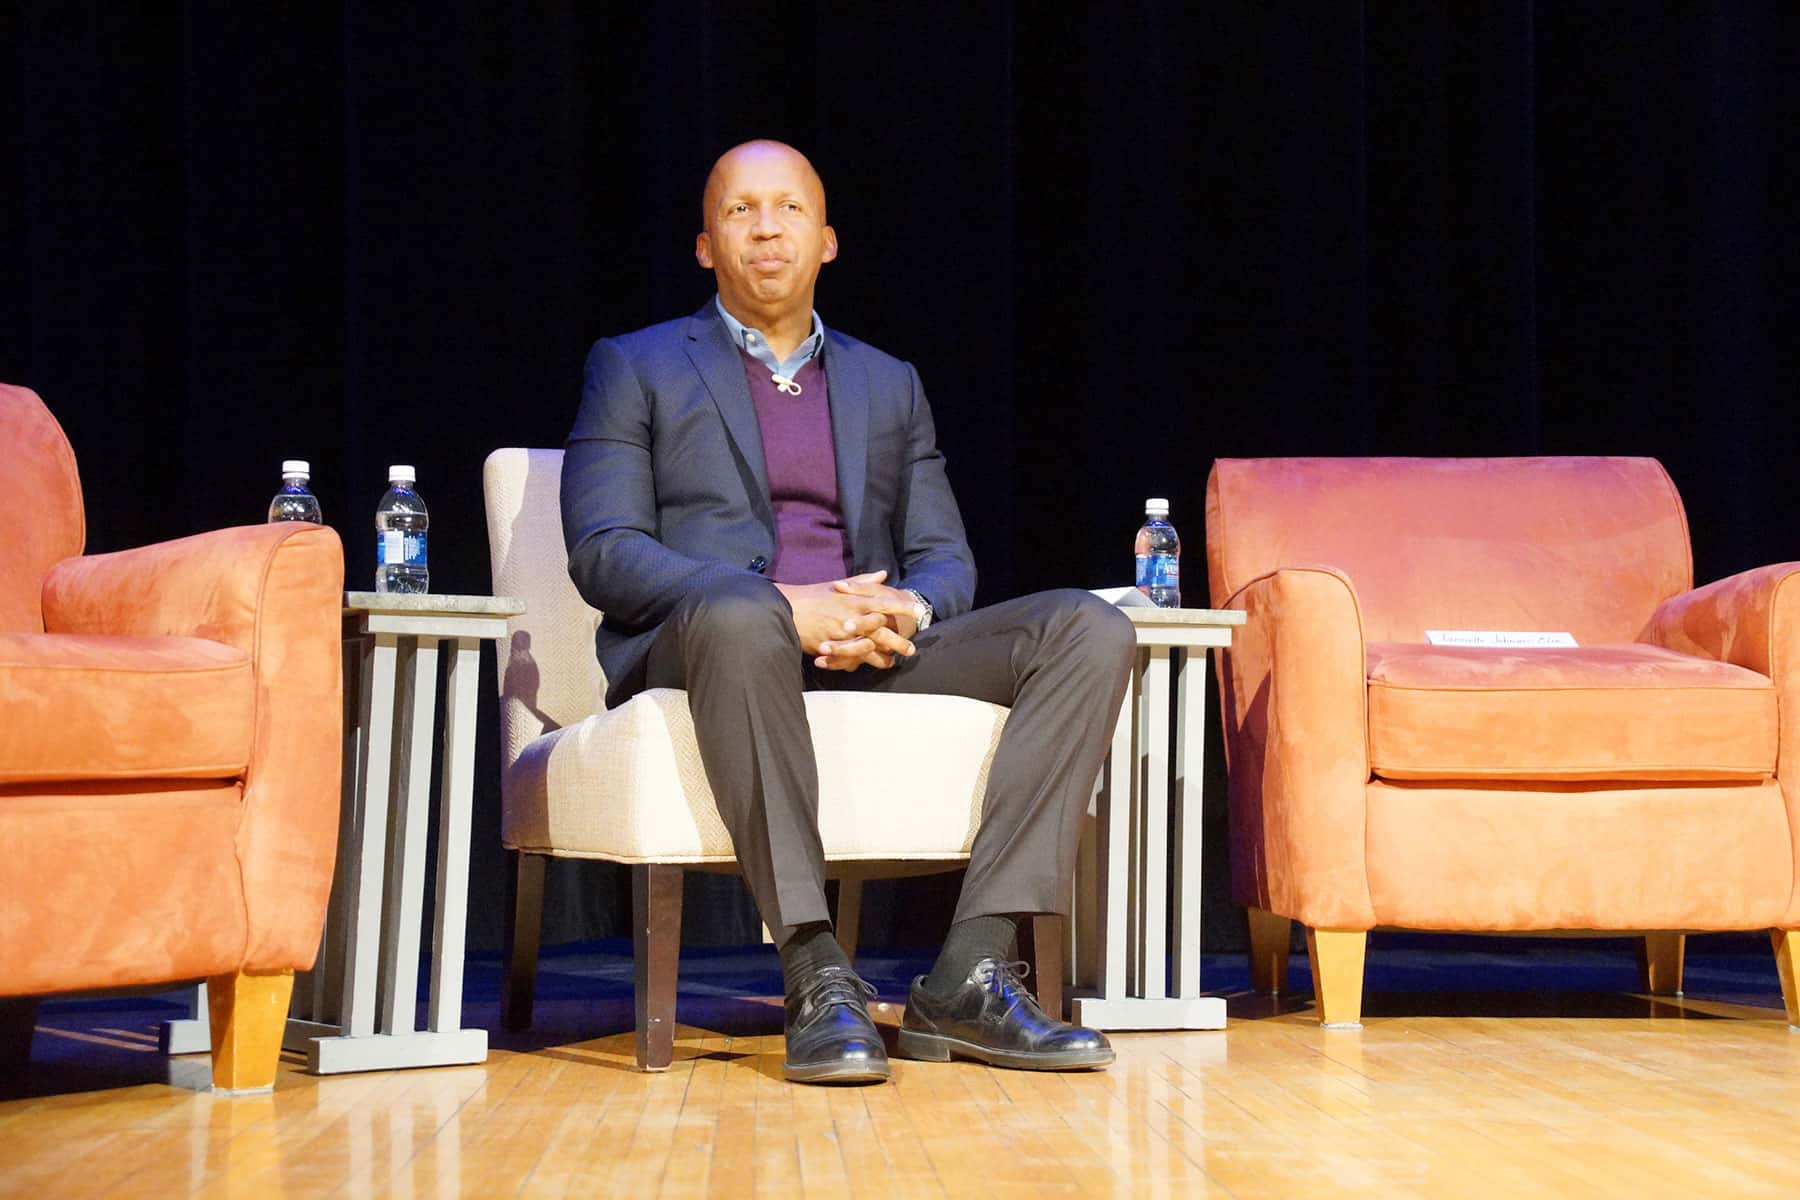 030916_BryanStevenson_517